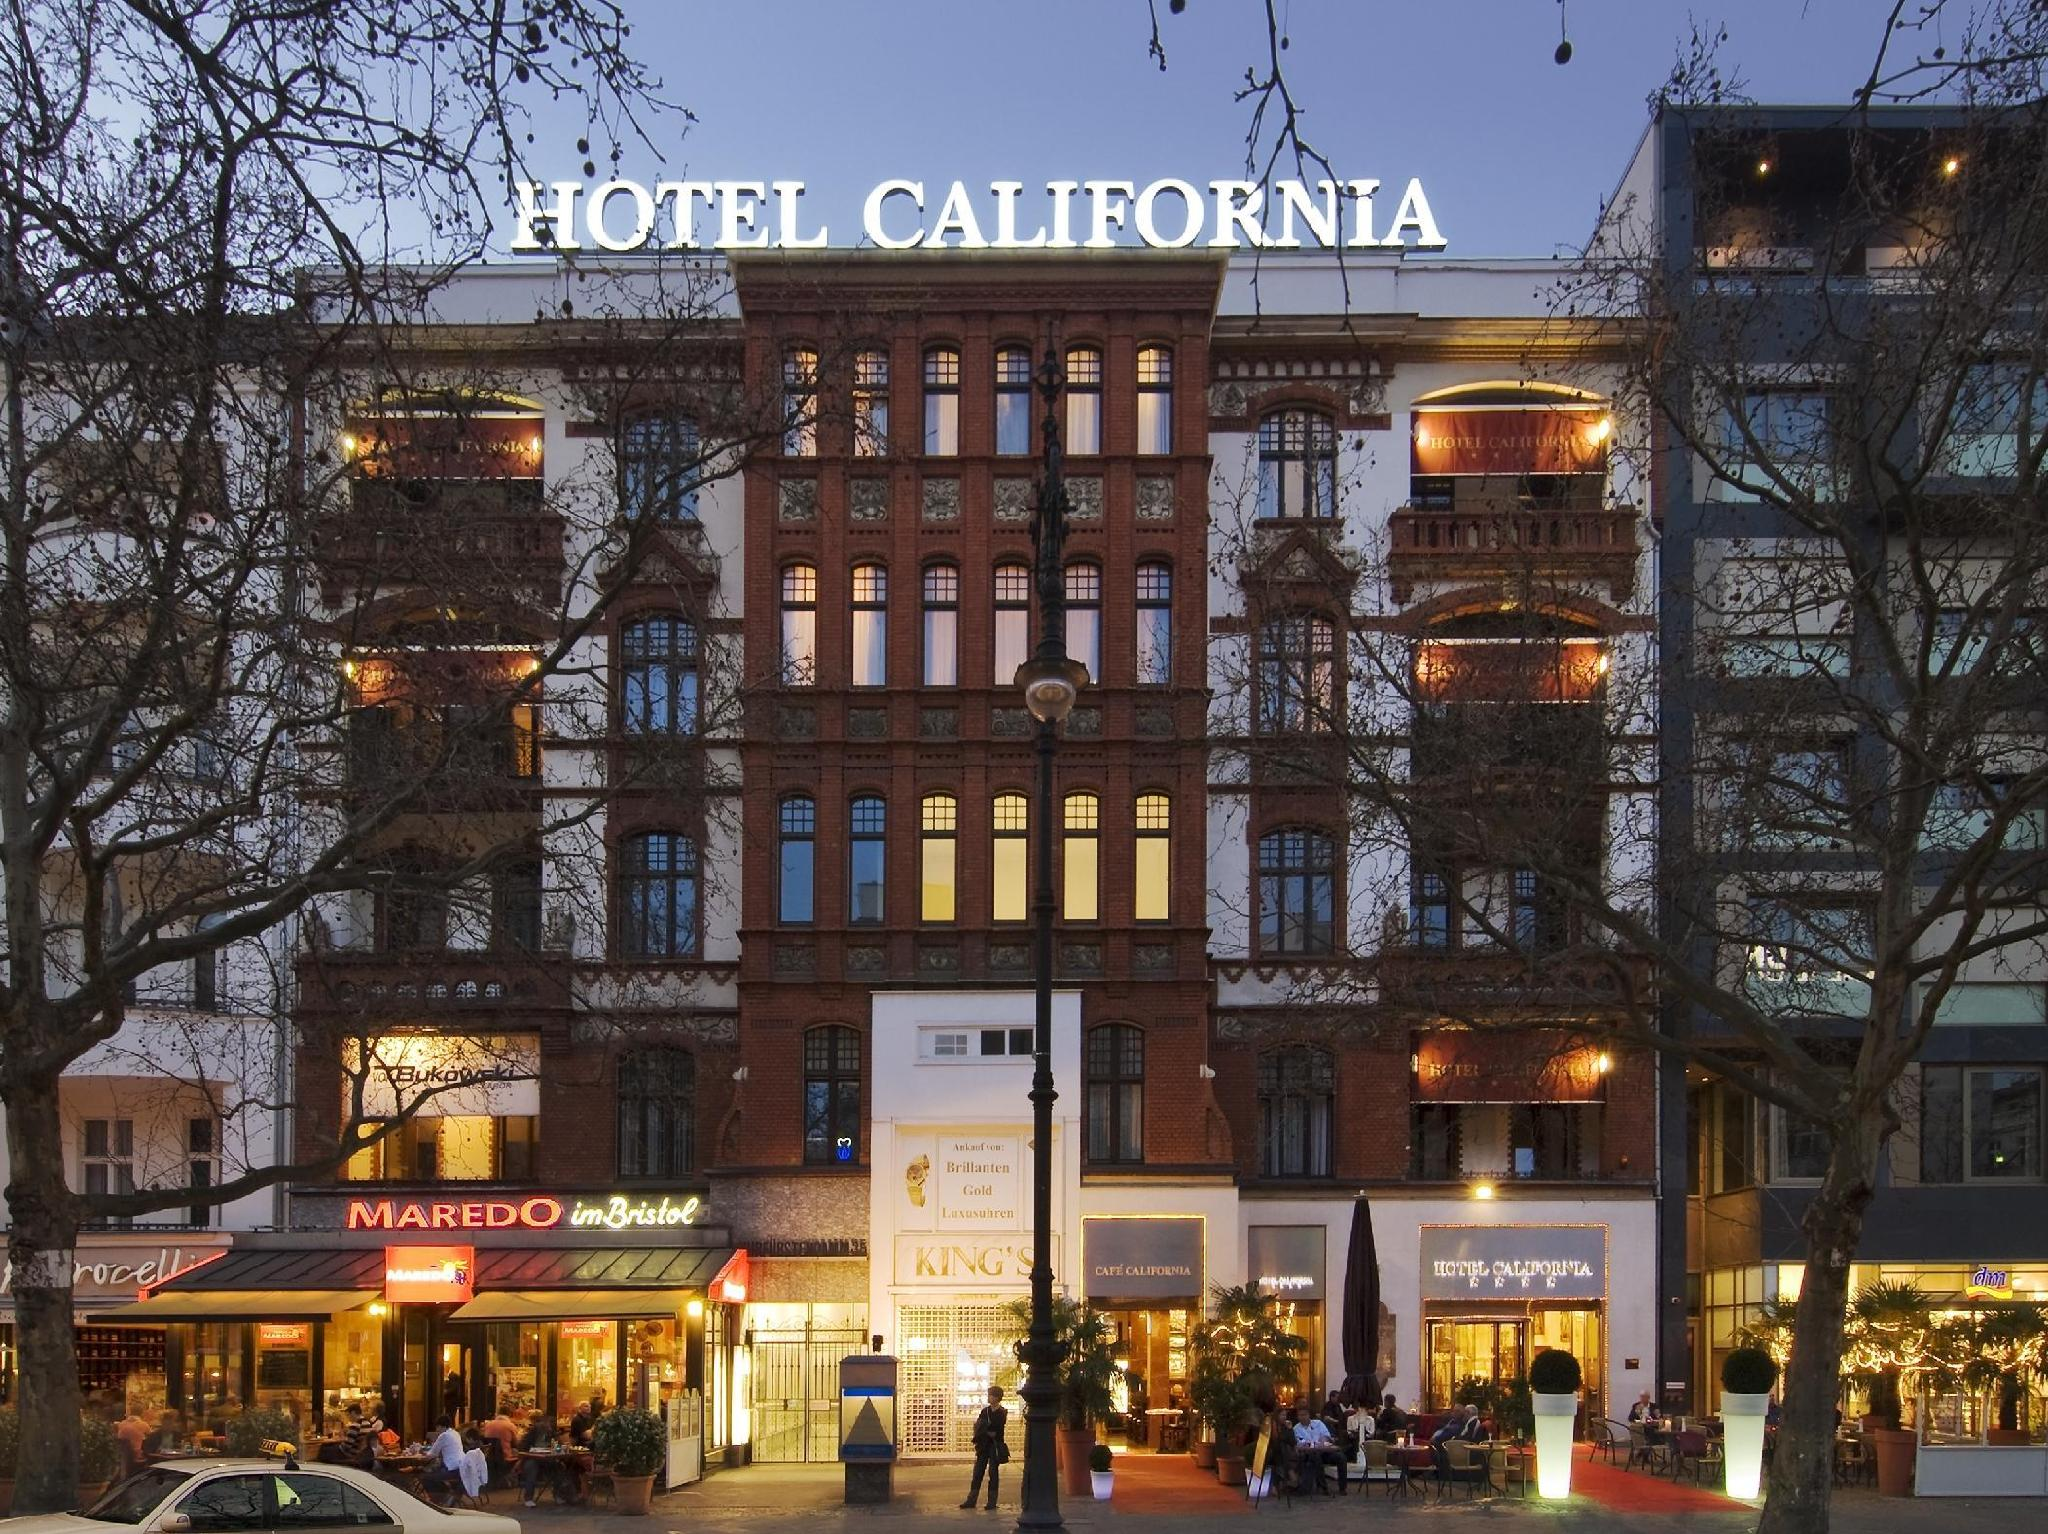 Hotel California am Kurfuerstendamm Berlín